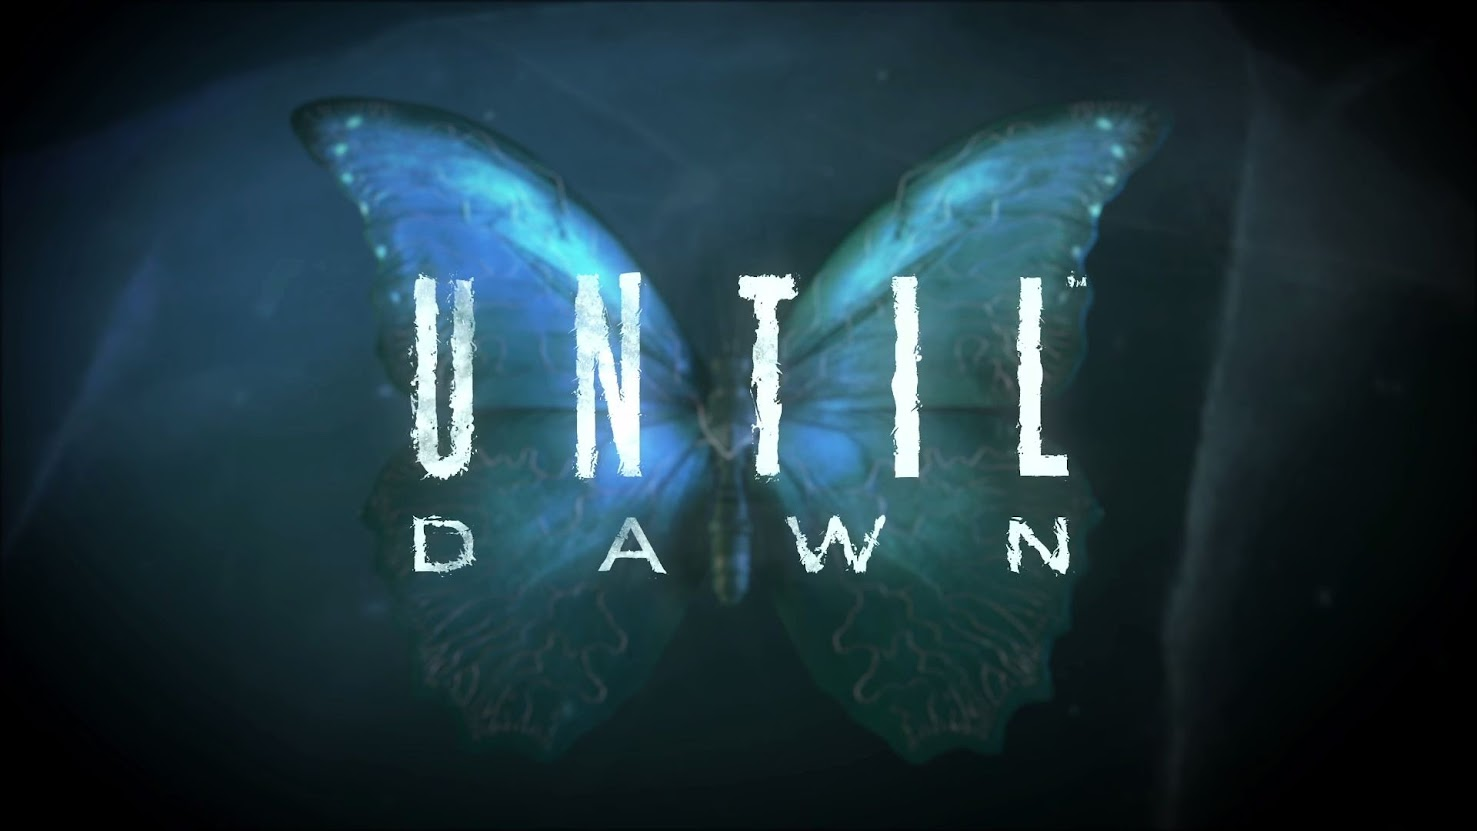 Until Dawm